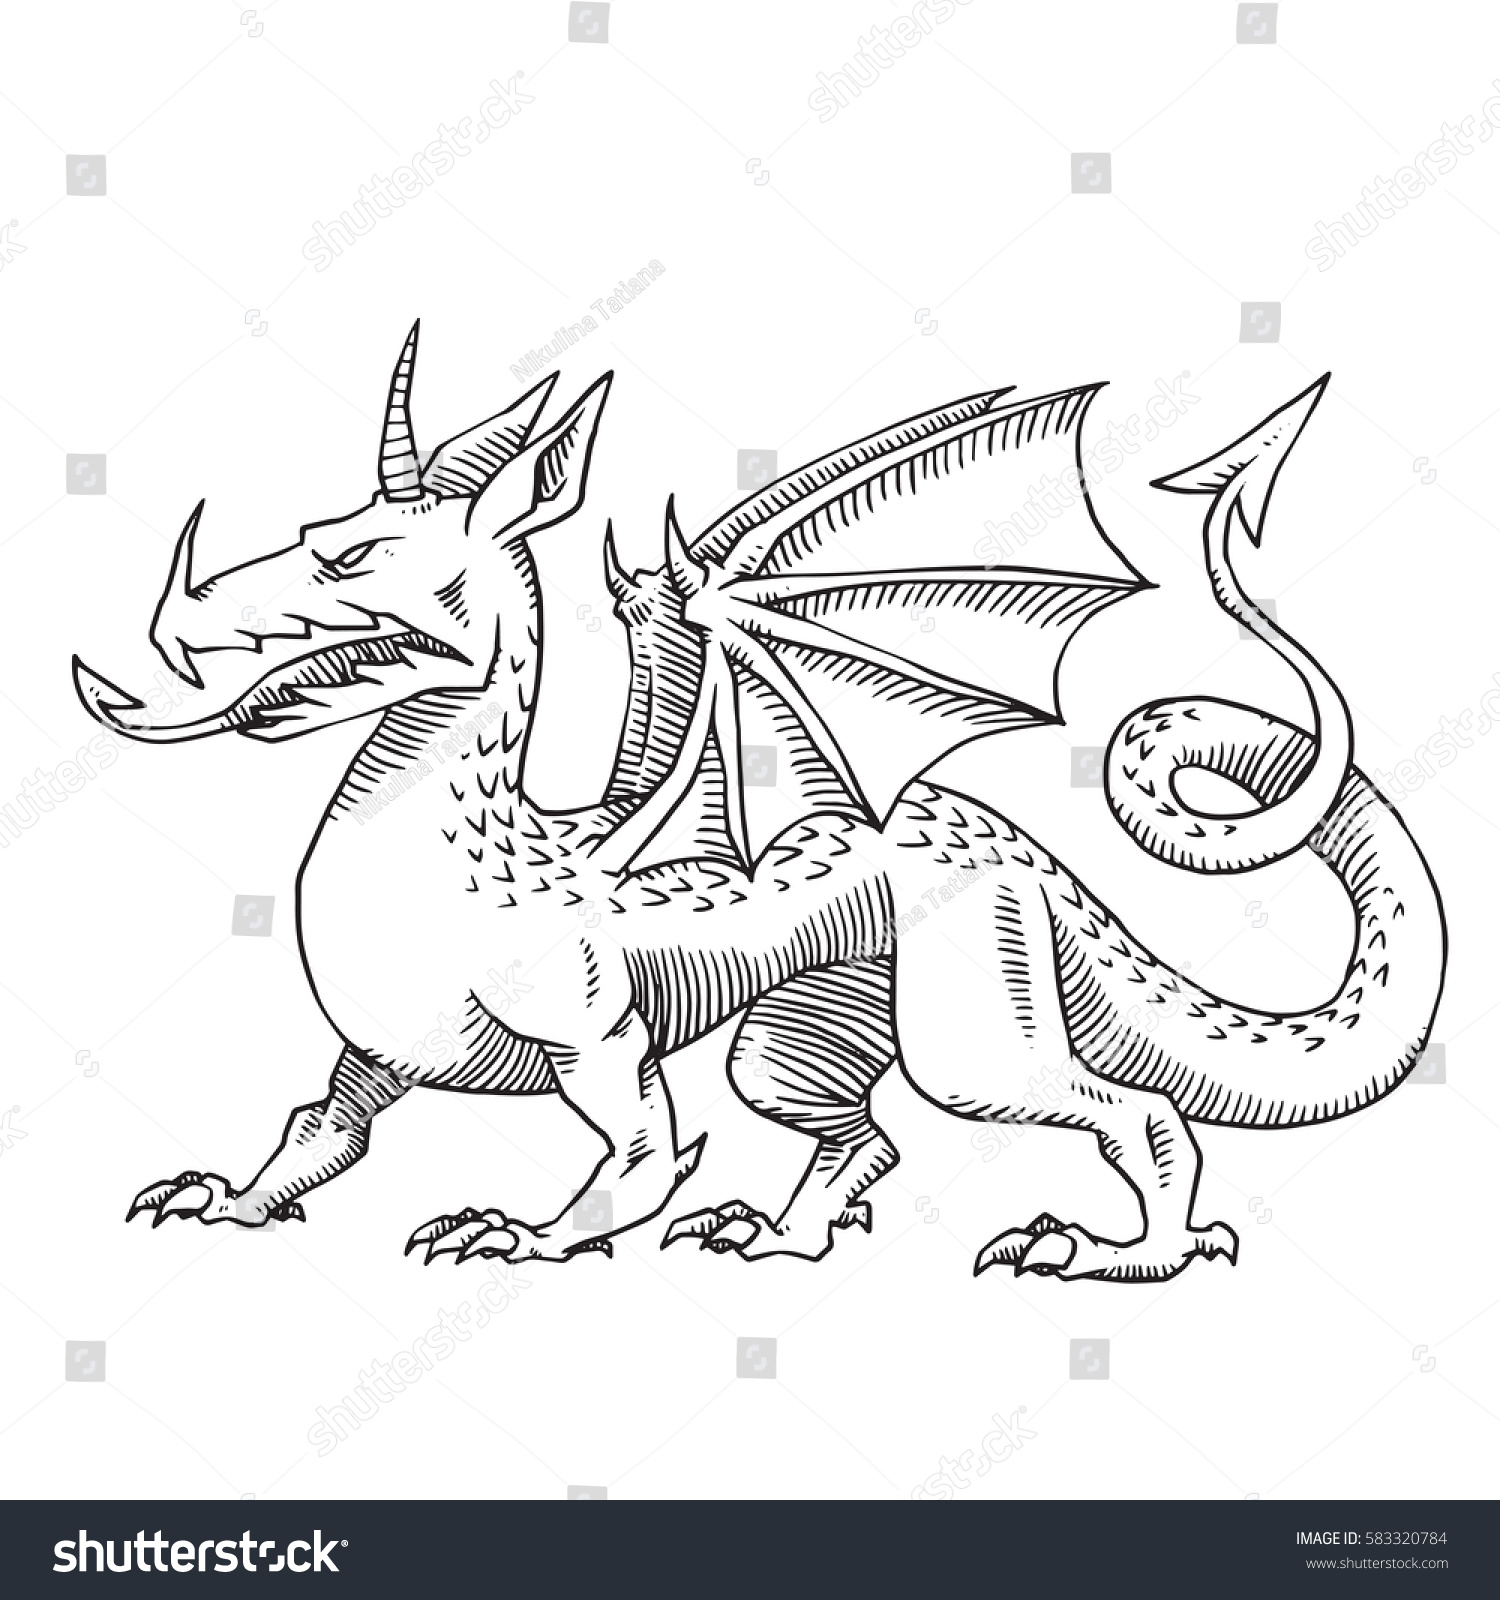 Vector image of heraldic dragon with one horn and wings standing and looking to the left